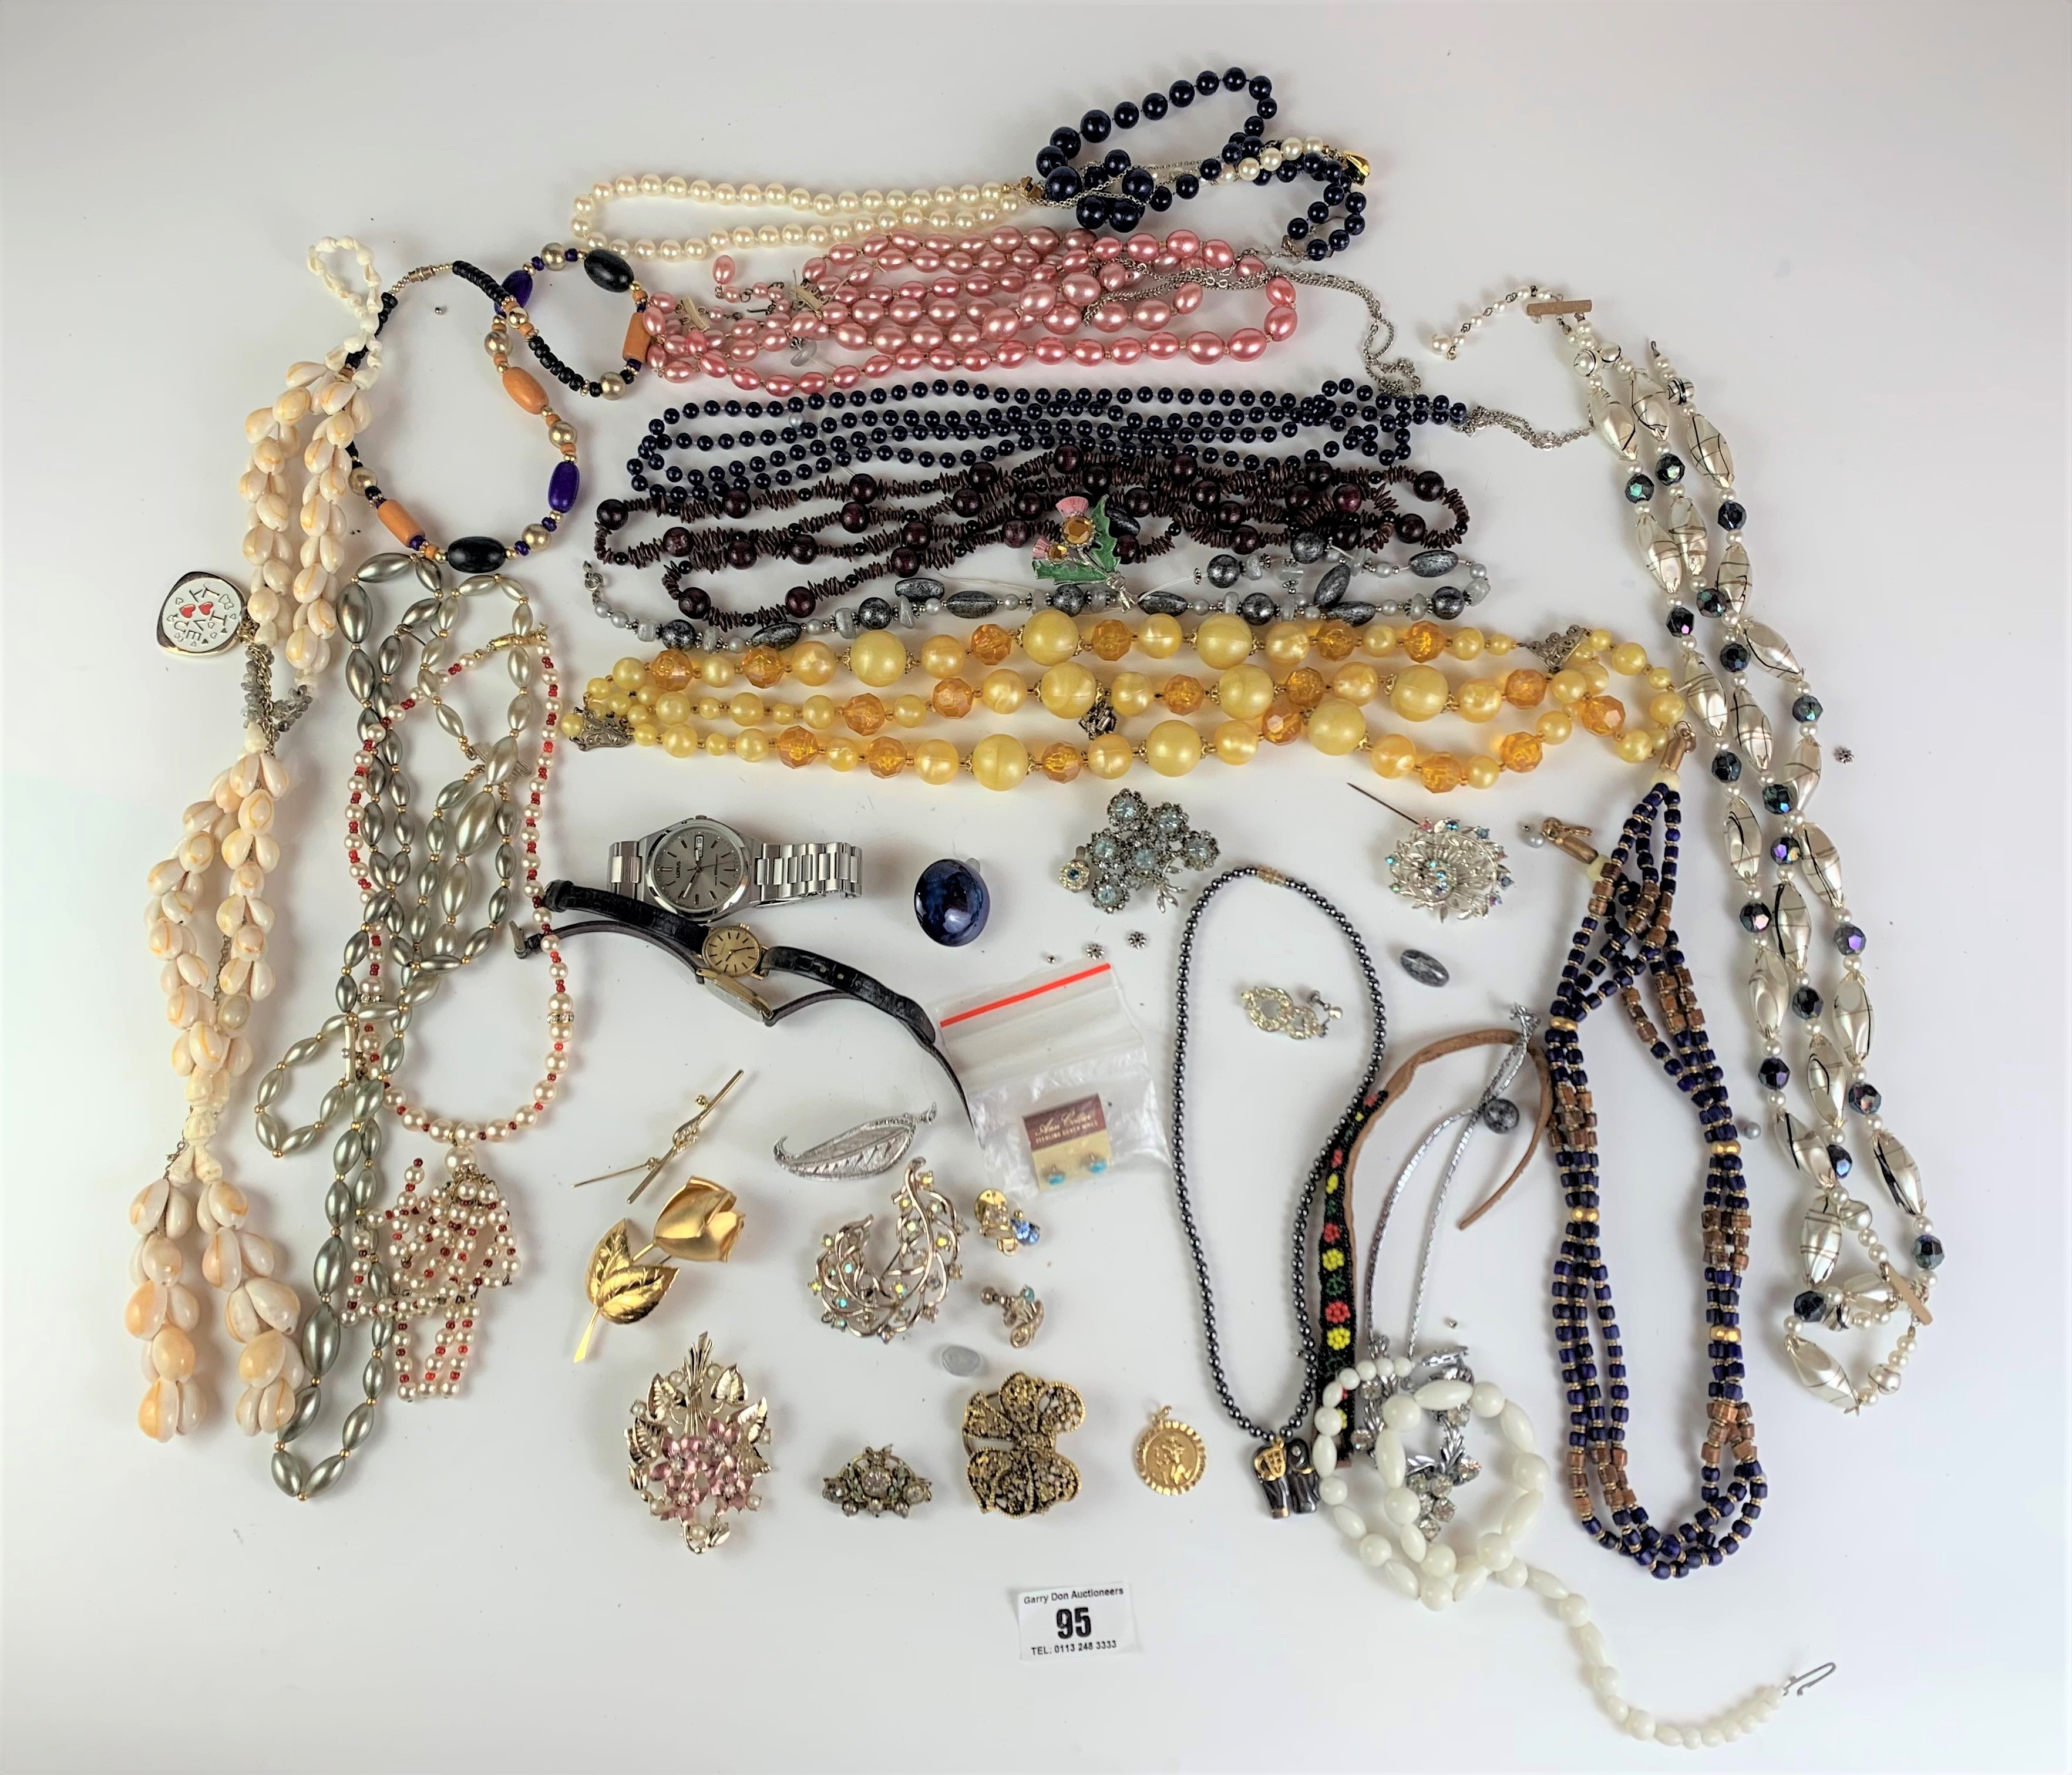 Large bag of assorted dress jewellery including necklaces, beads, earrings, brooches etc. - Image 2 of 8